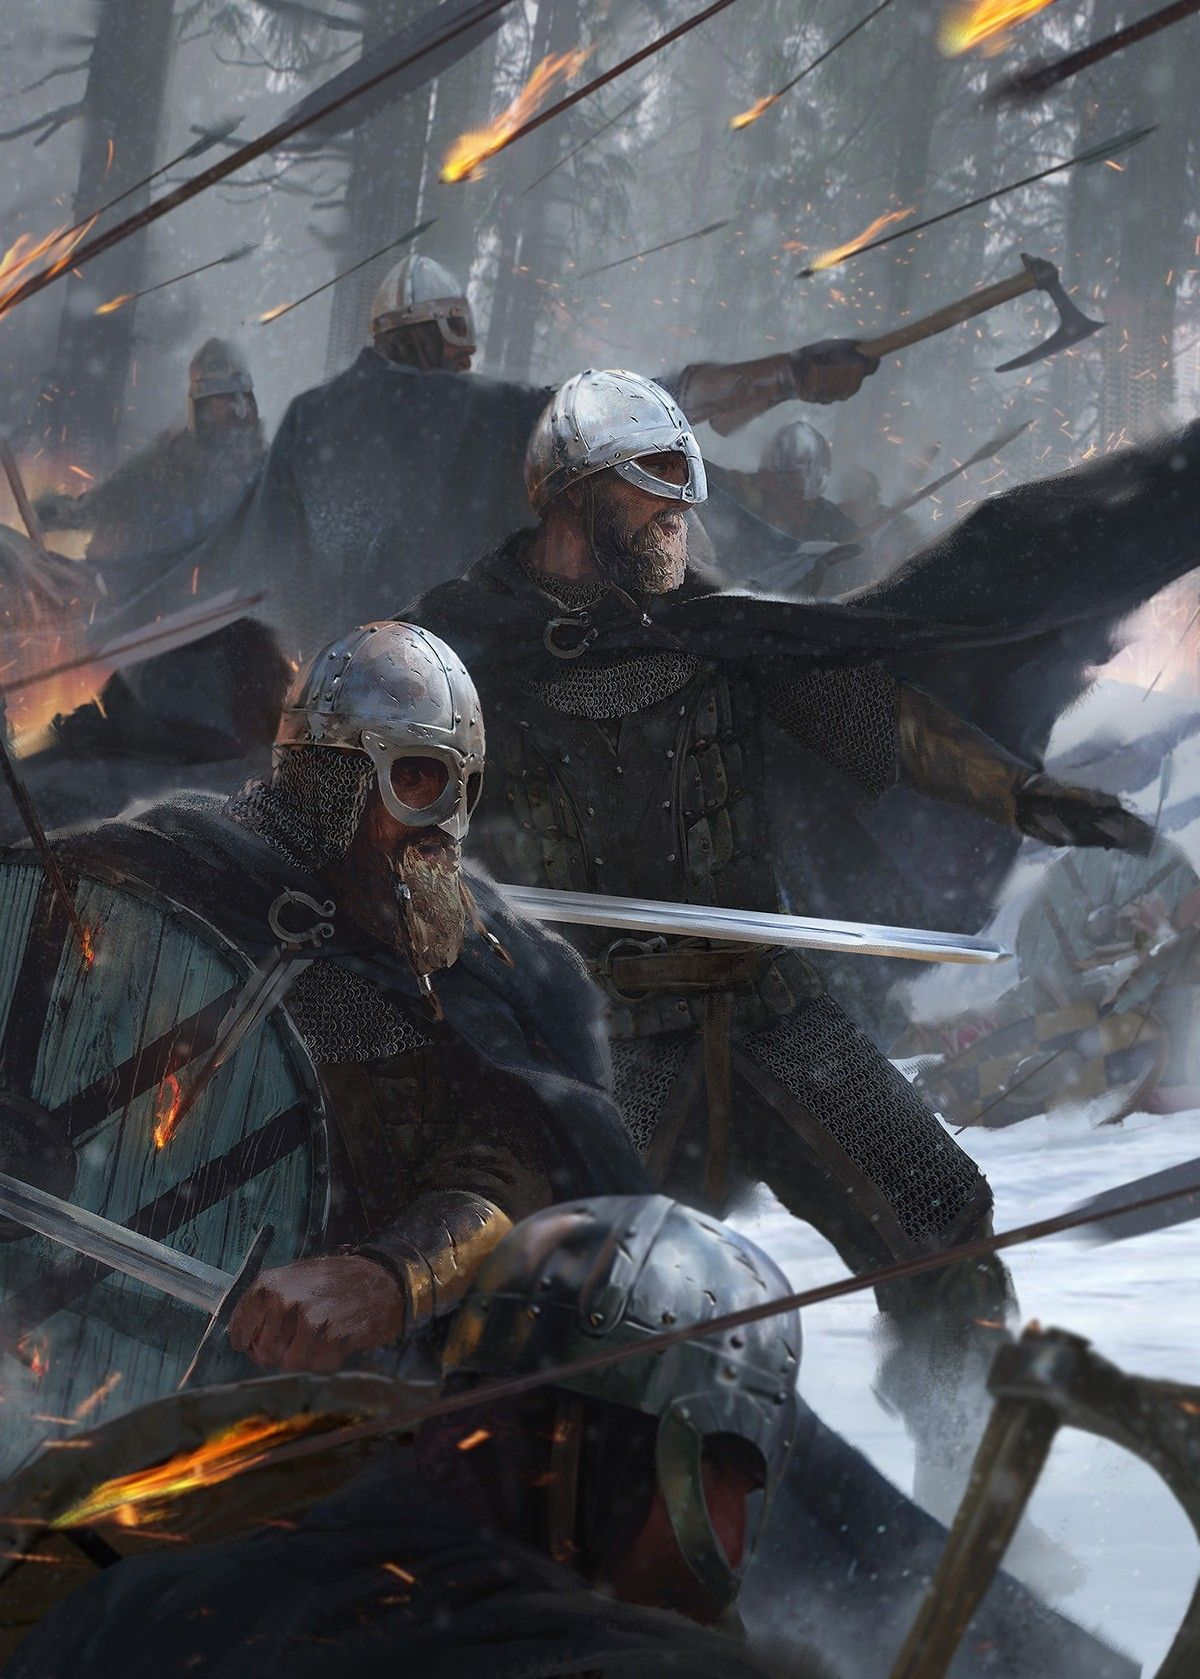 Pin by Slava Shestopalov on Fantasy Art | Viking art, Art ...